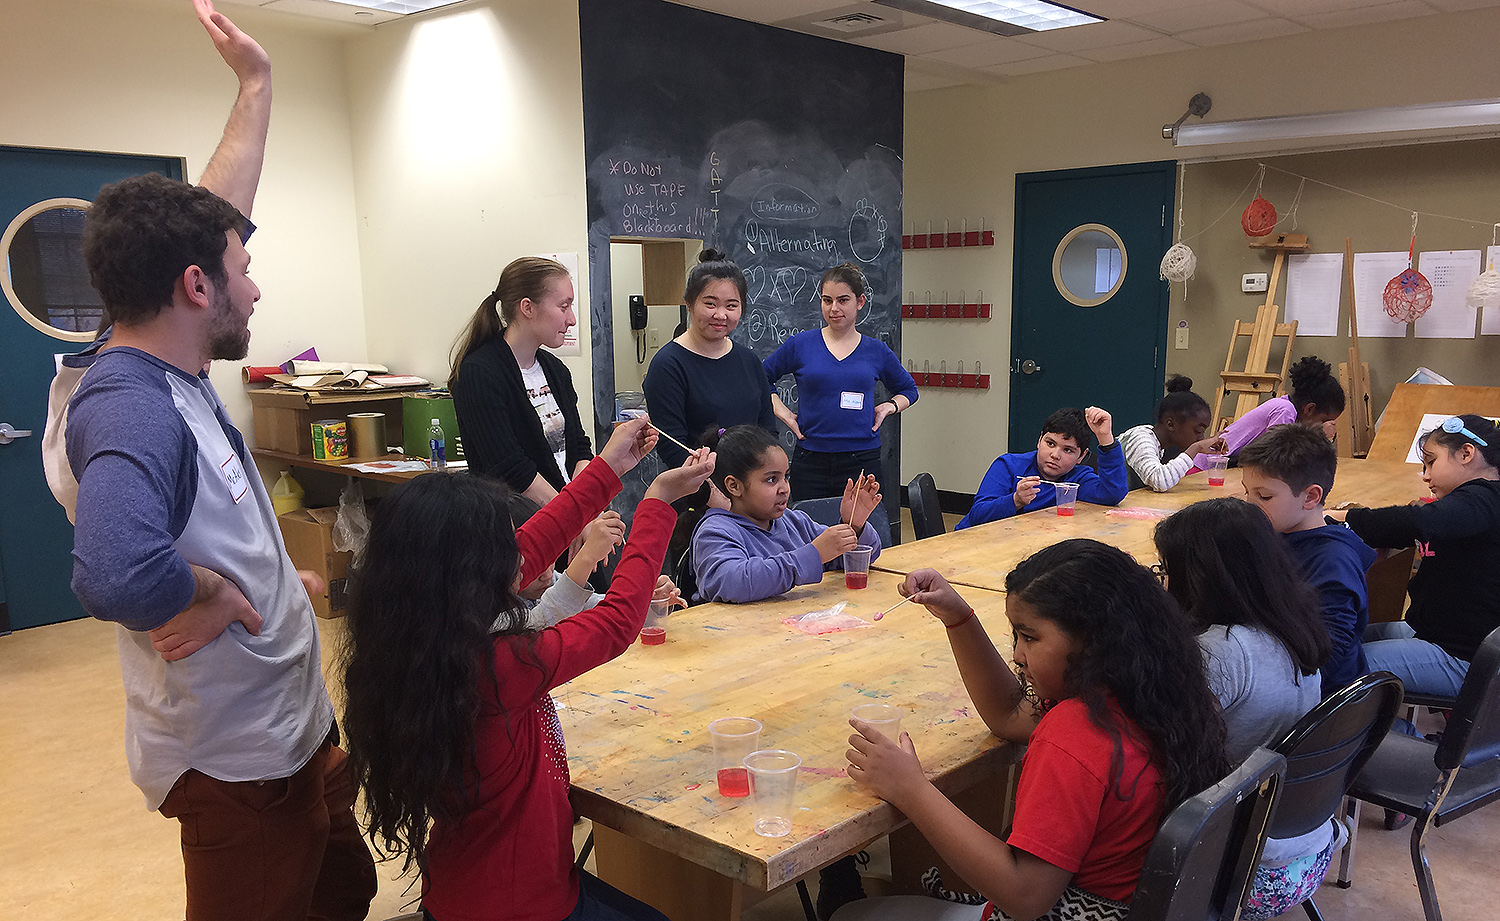 The Wesleyan students taught GSTLC's 1st-5th graders about basic molecular biology and then led them through a hands-on activity where the children extracted DNA from strawberries.